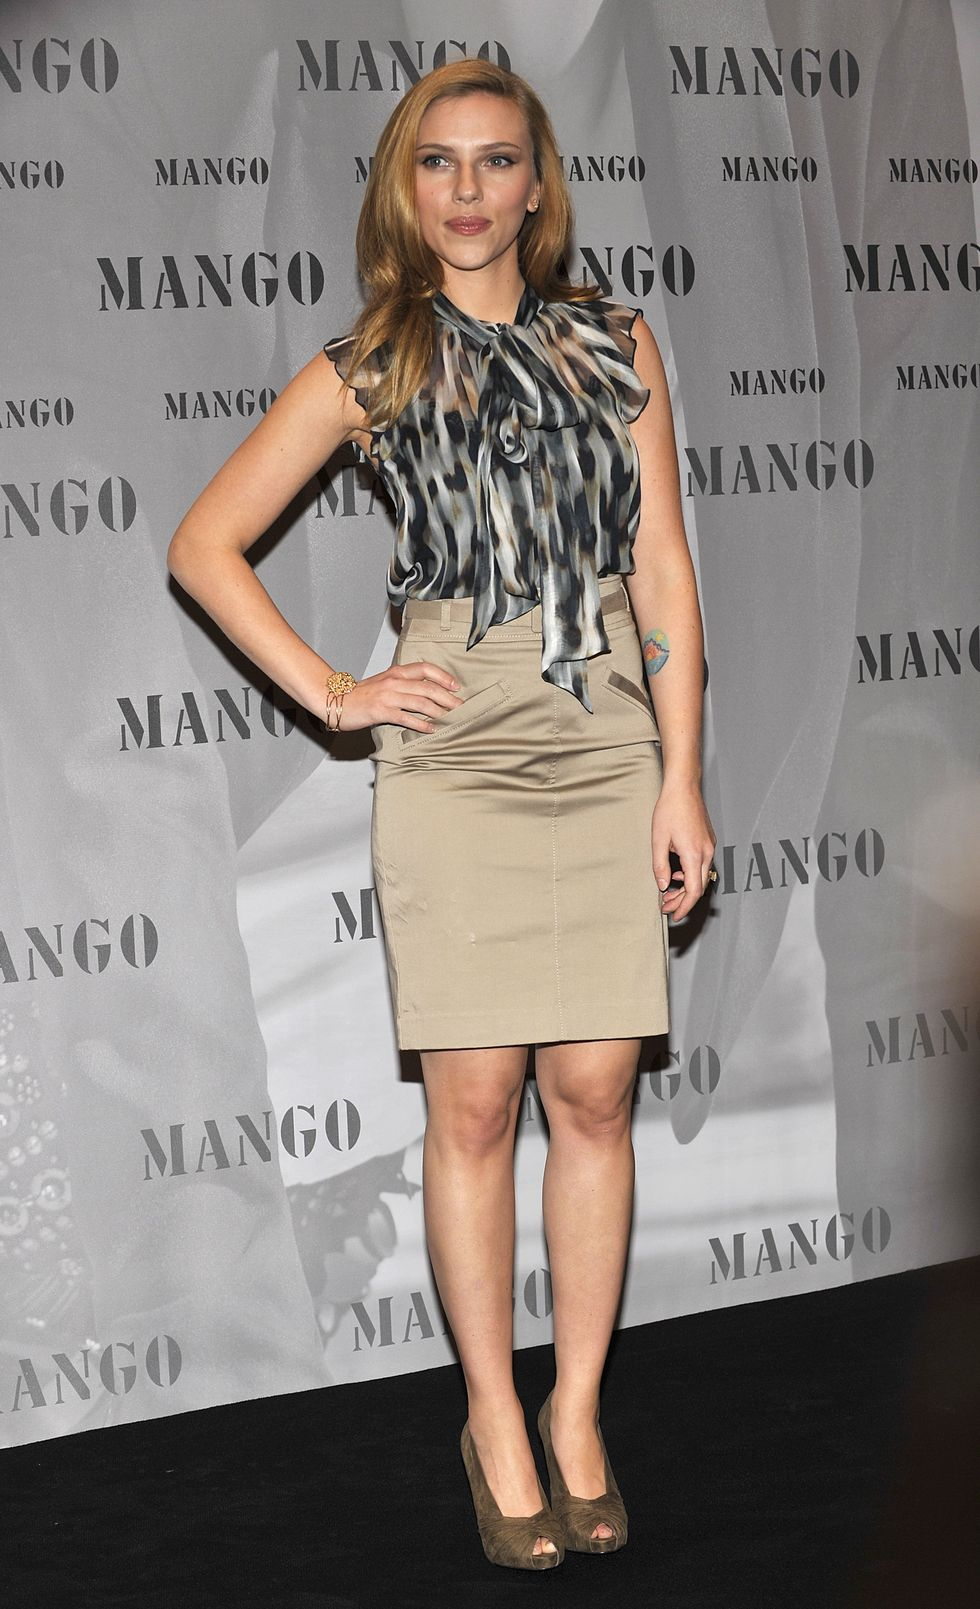 scarlett-johansson-mango-winter-200910-campaign-launch-in-munich-01